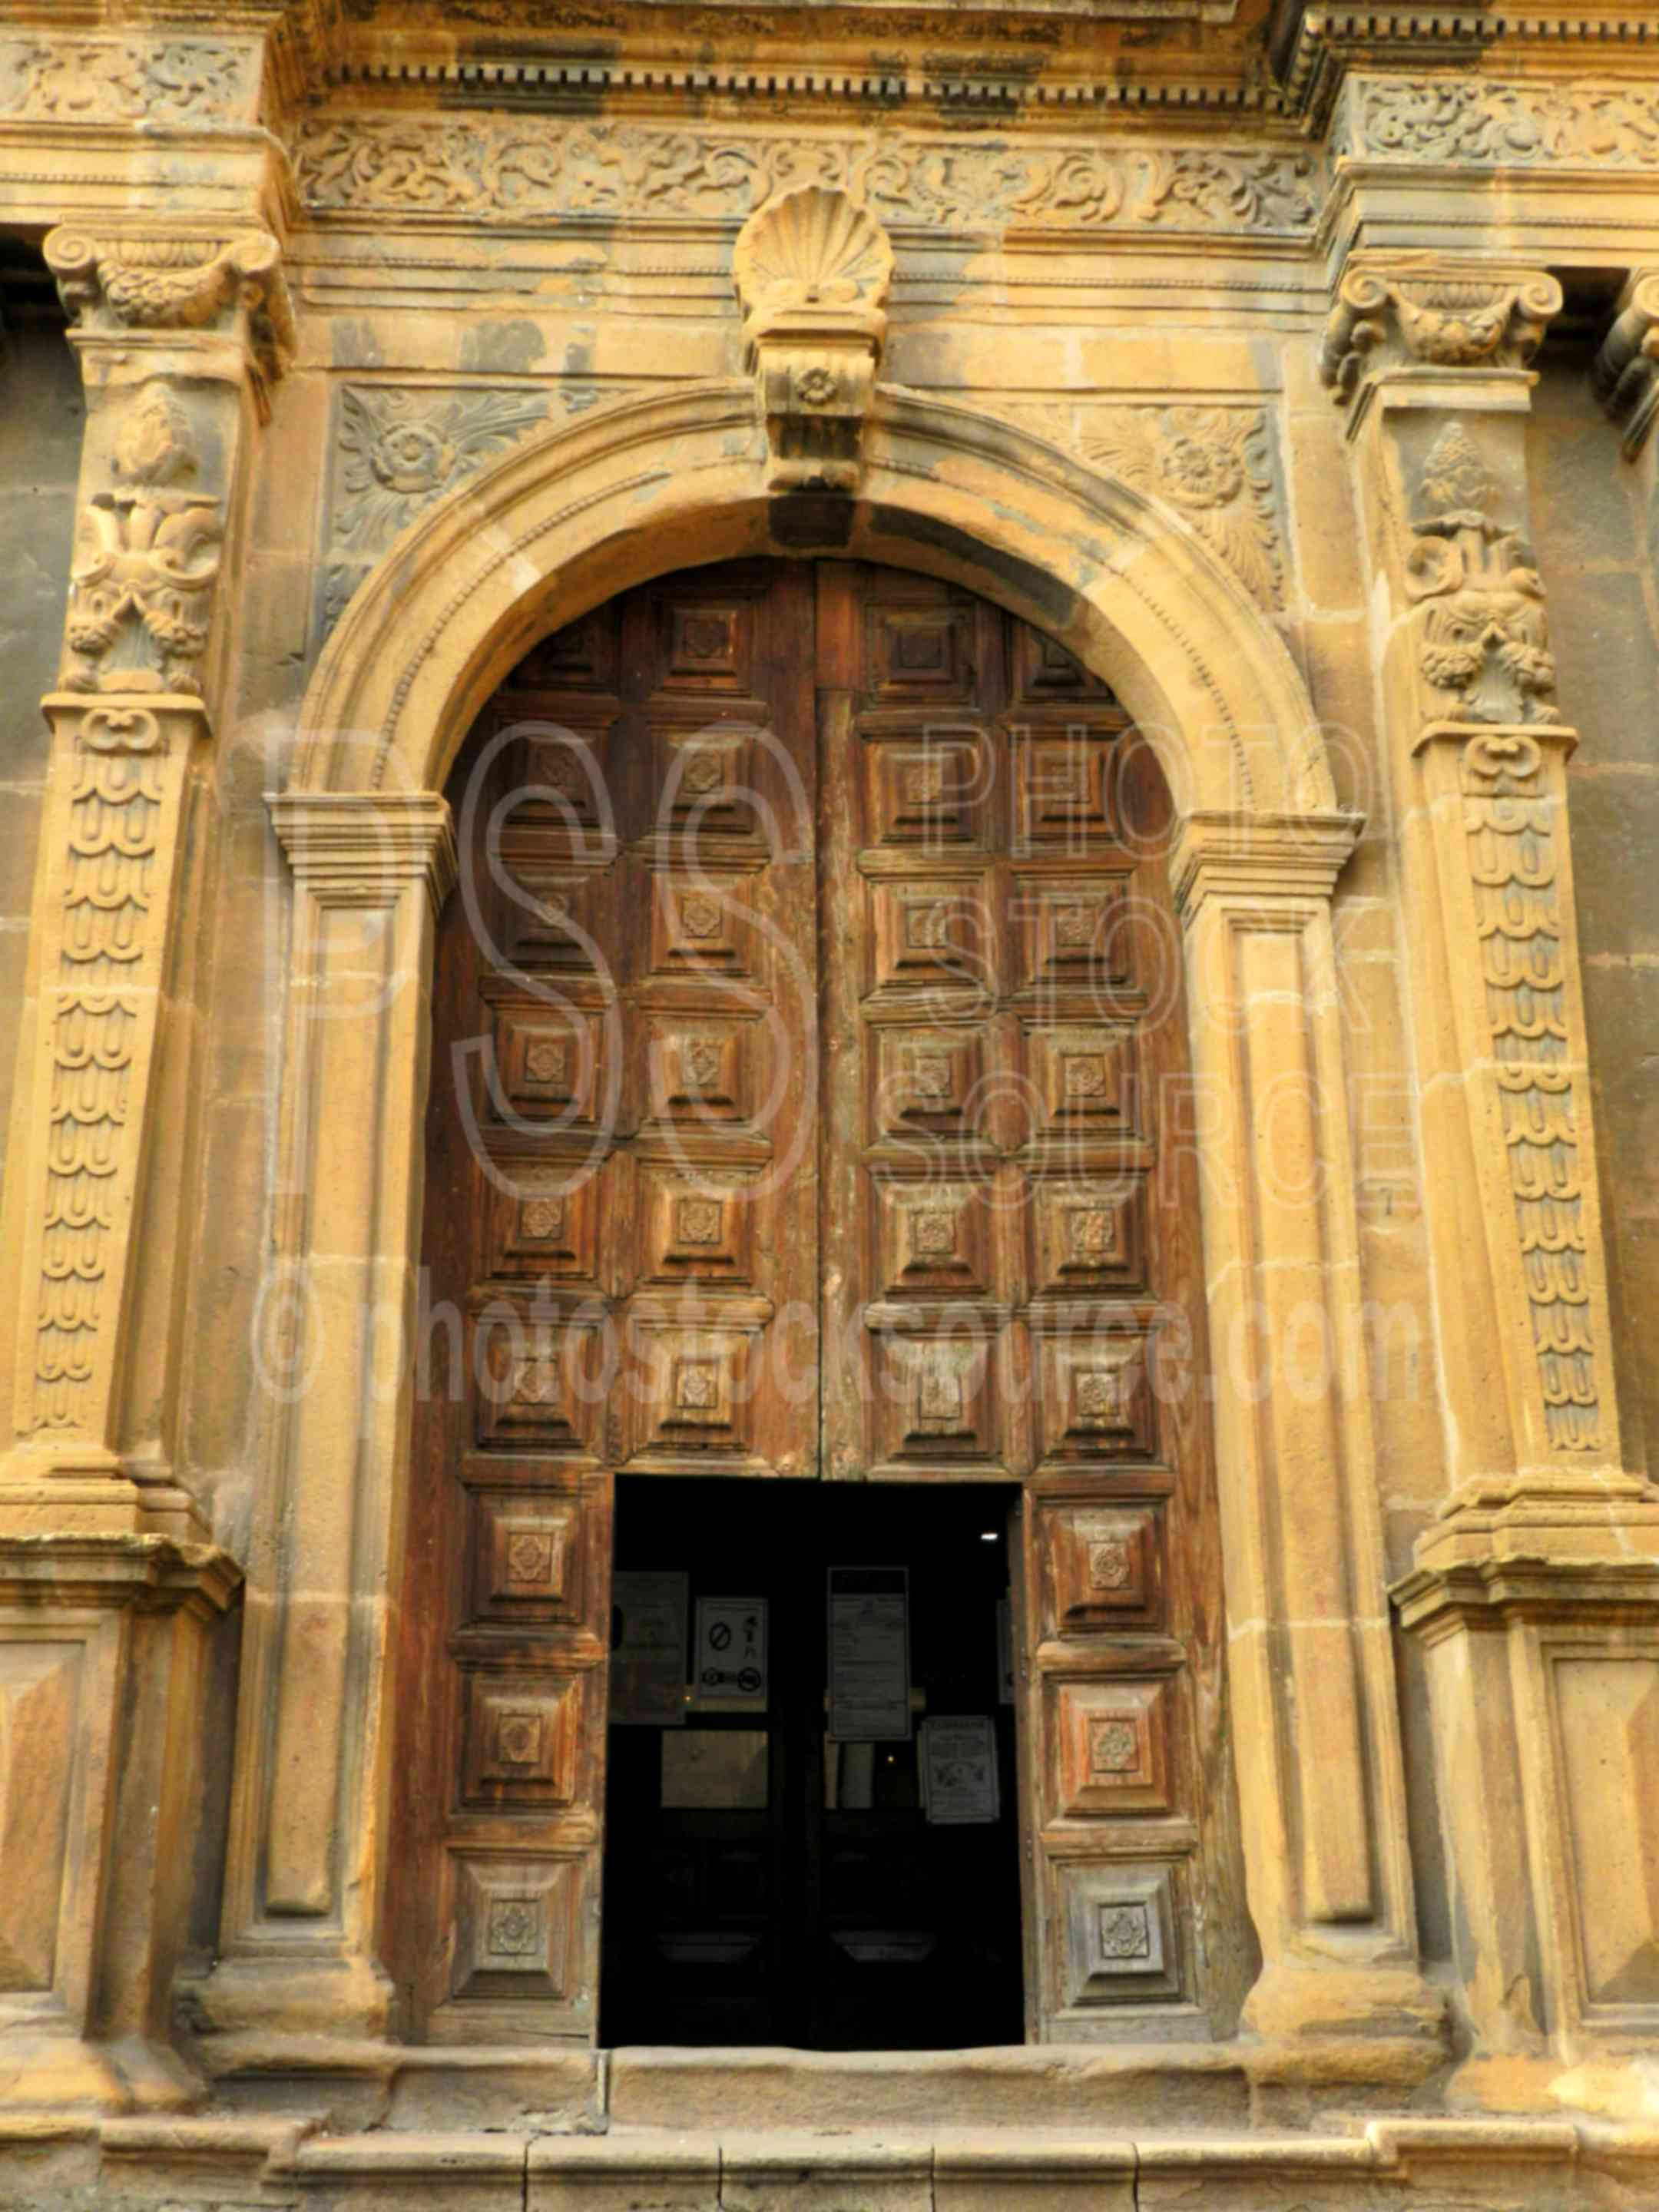 Church of St. Rocco Doorpiazza armerinachurch & Photo of Church of St. Rocco Door by Photo Stock Source church ... Pezcame.Com